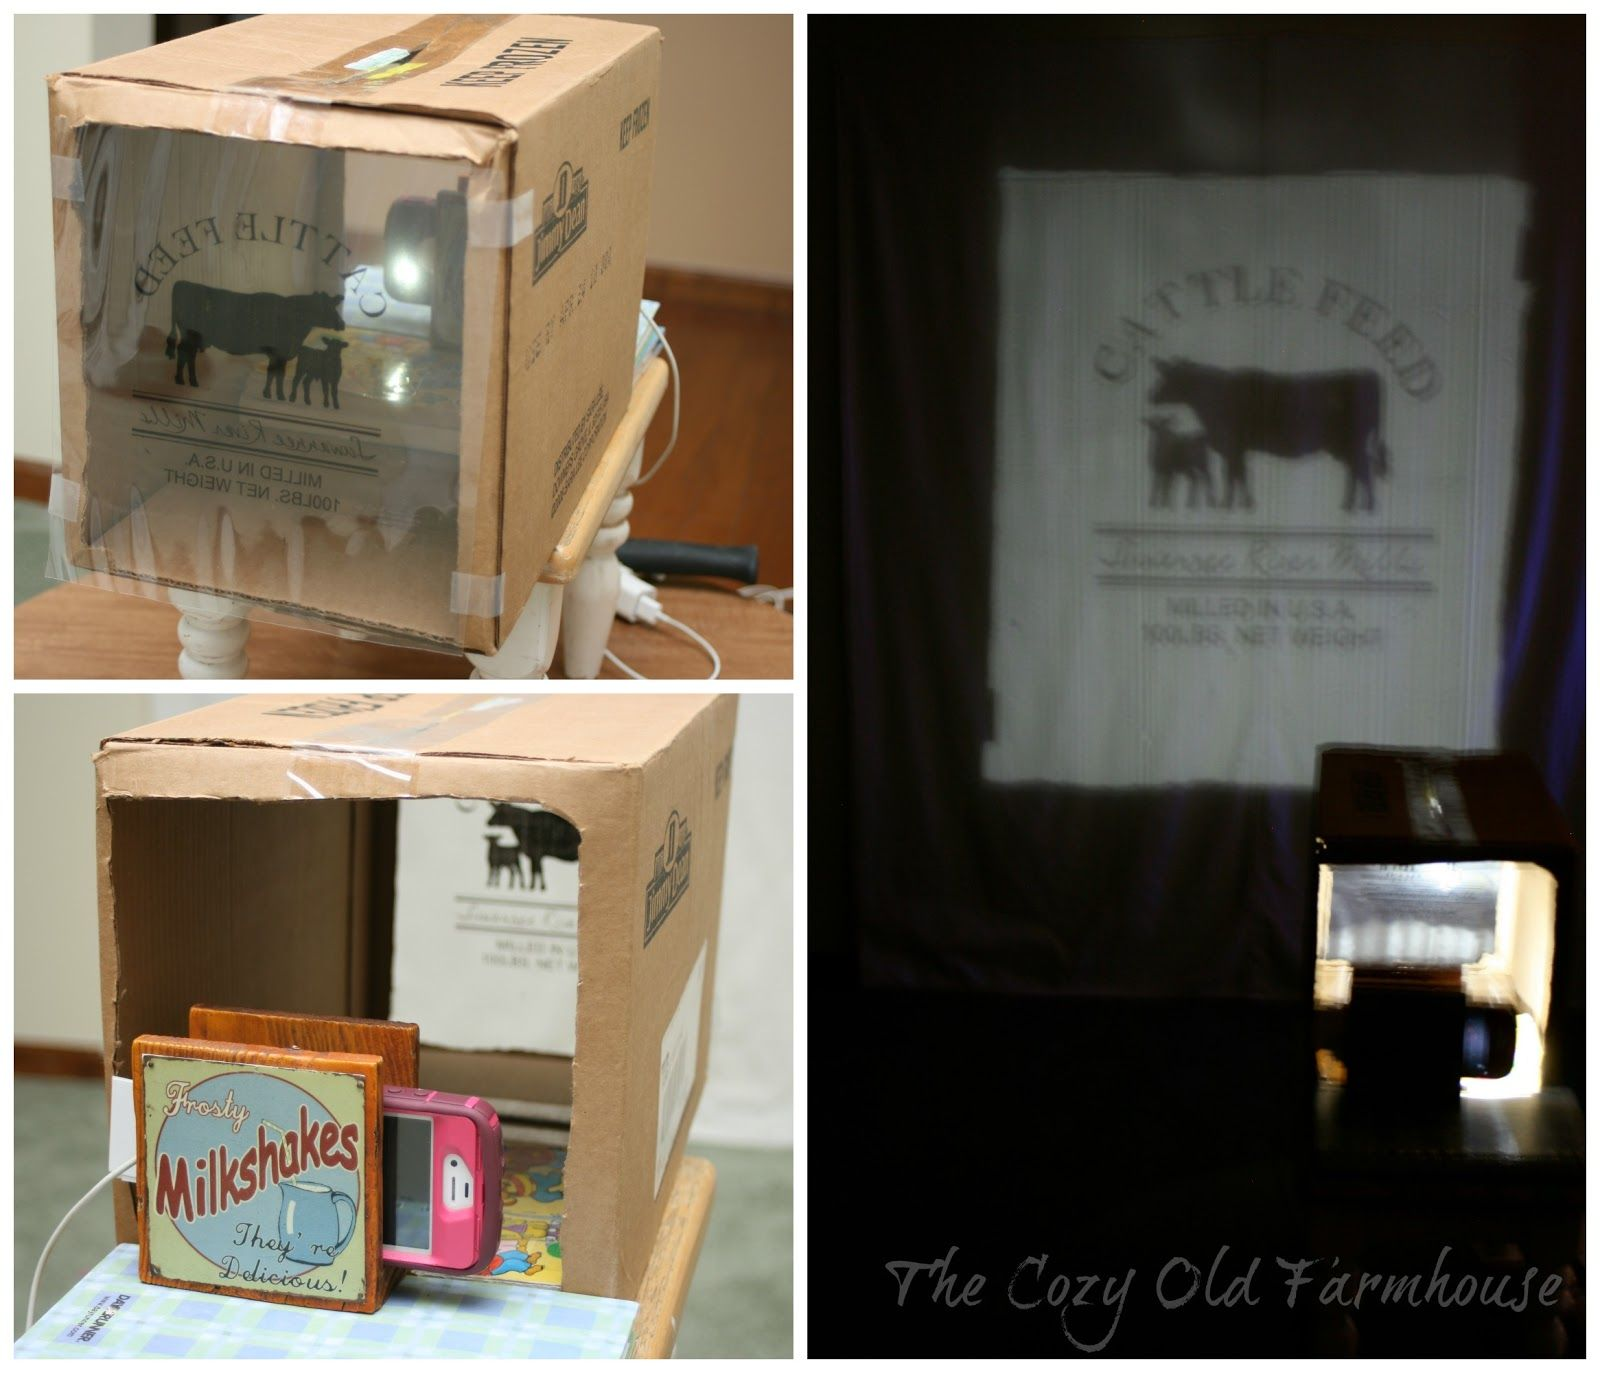 Homemade Overhead Projector Using Box And Flash Light App